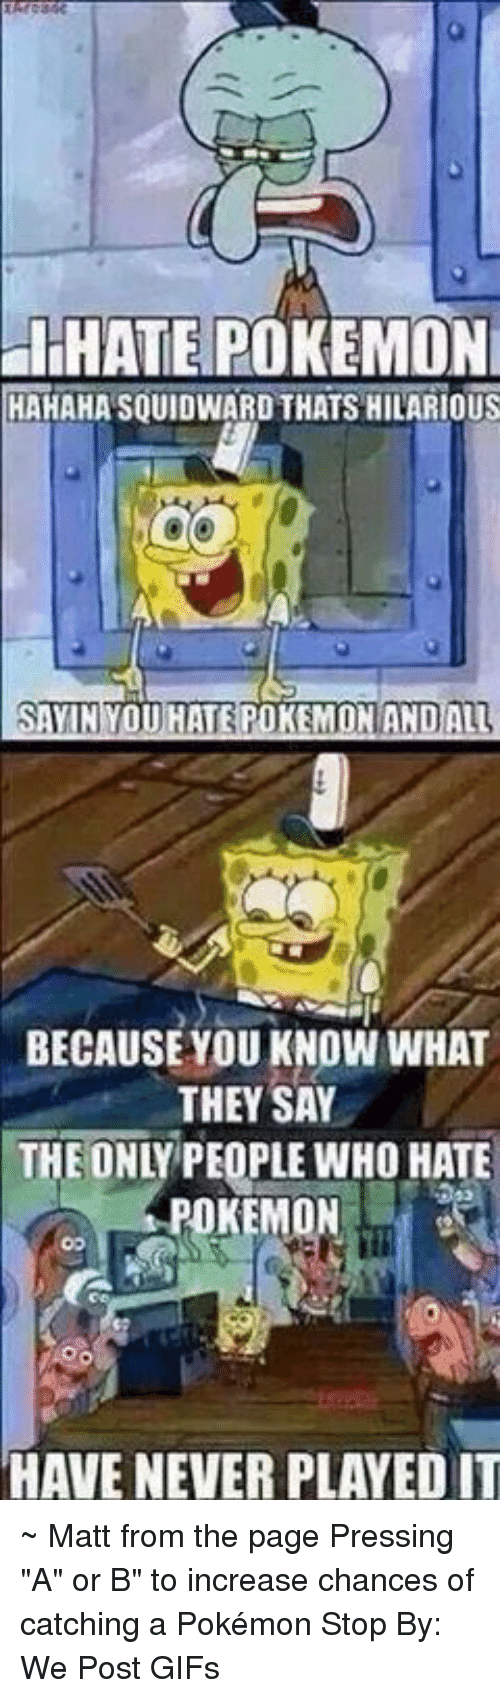 """Dank, Pokemon, and Squidward: HHATE POKEMON  HAHAHA SQUIDWARD THATS HILARIOUS  BECAUSEYOU KNOW WHAT  THEY SAY  THE ONLY PEOPLE WHO HATE  POKEMON  HAVE NEVER PLAYED IT ~ Matt from the page Pressing """"A"""" or B"""" to increase chances of catching a Pokémon Stop By: We Post GIFs"""